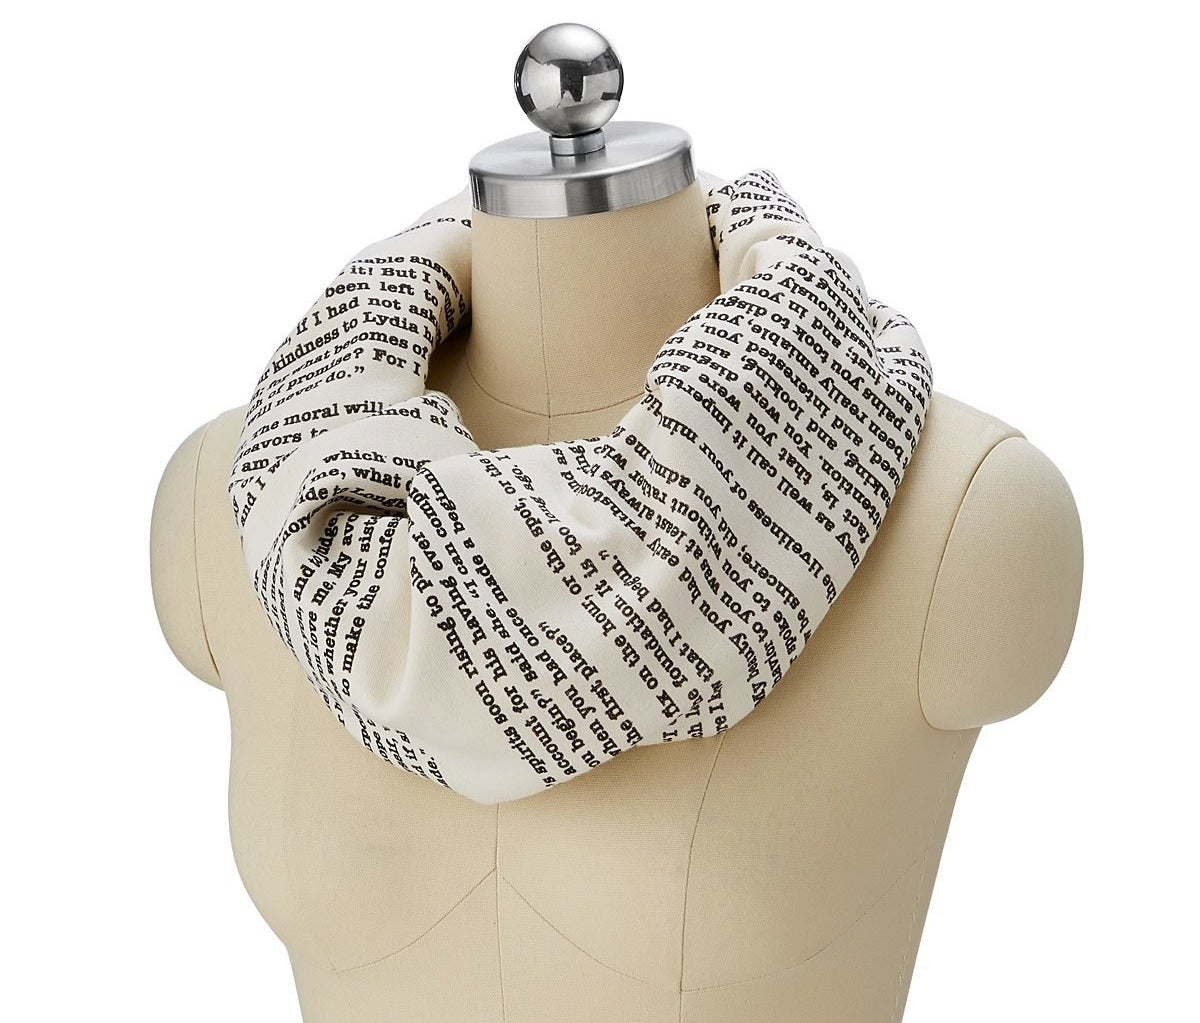 mannequin with a loop scarf with text printed on it